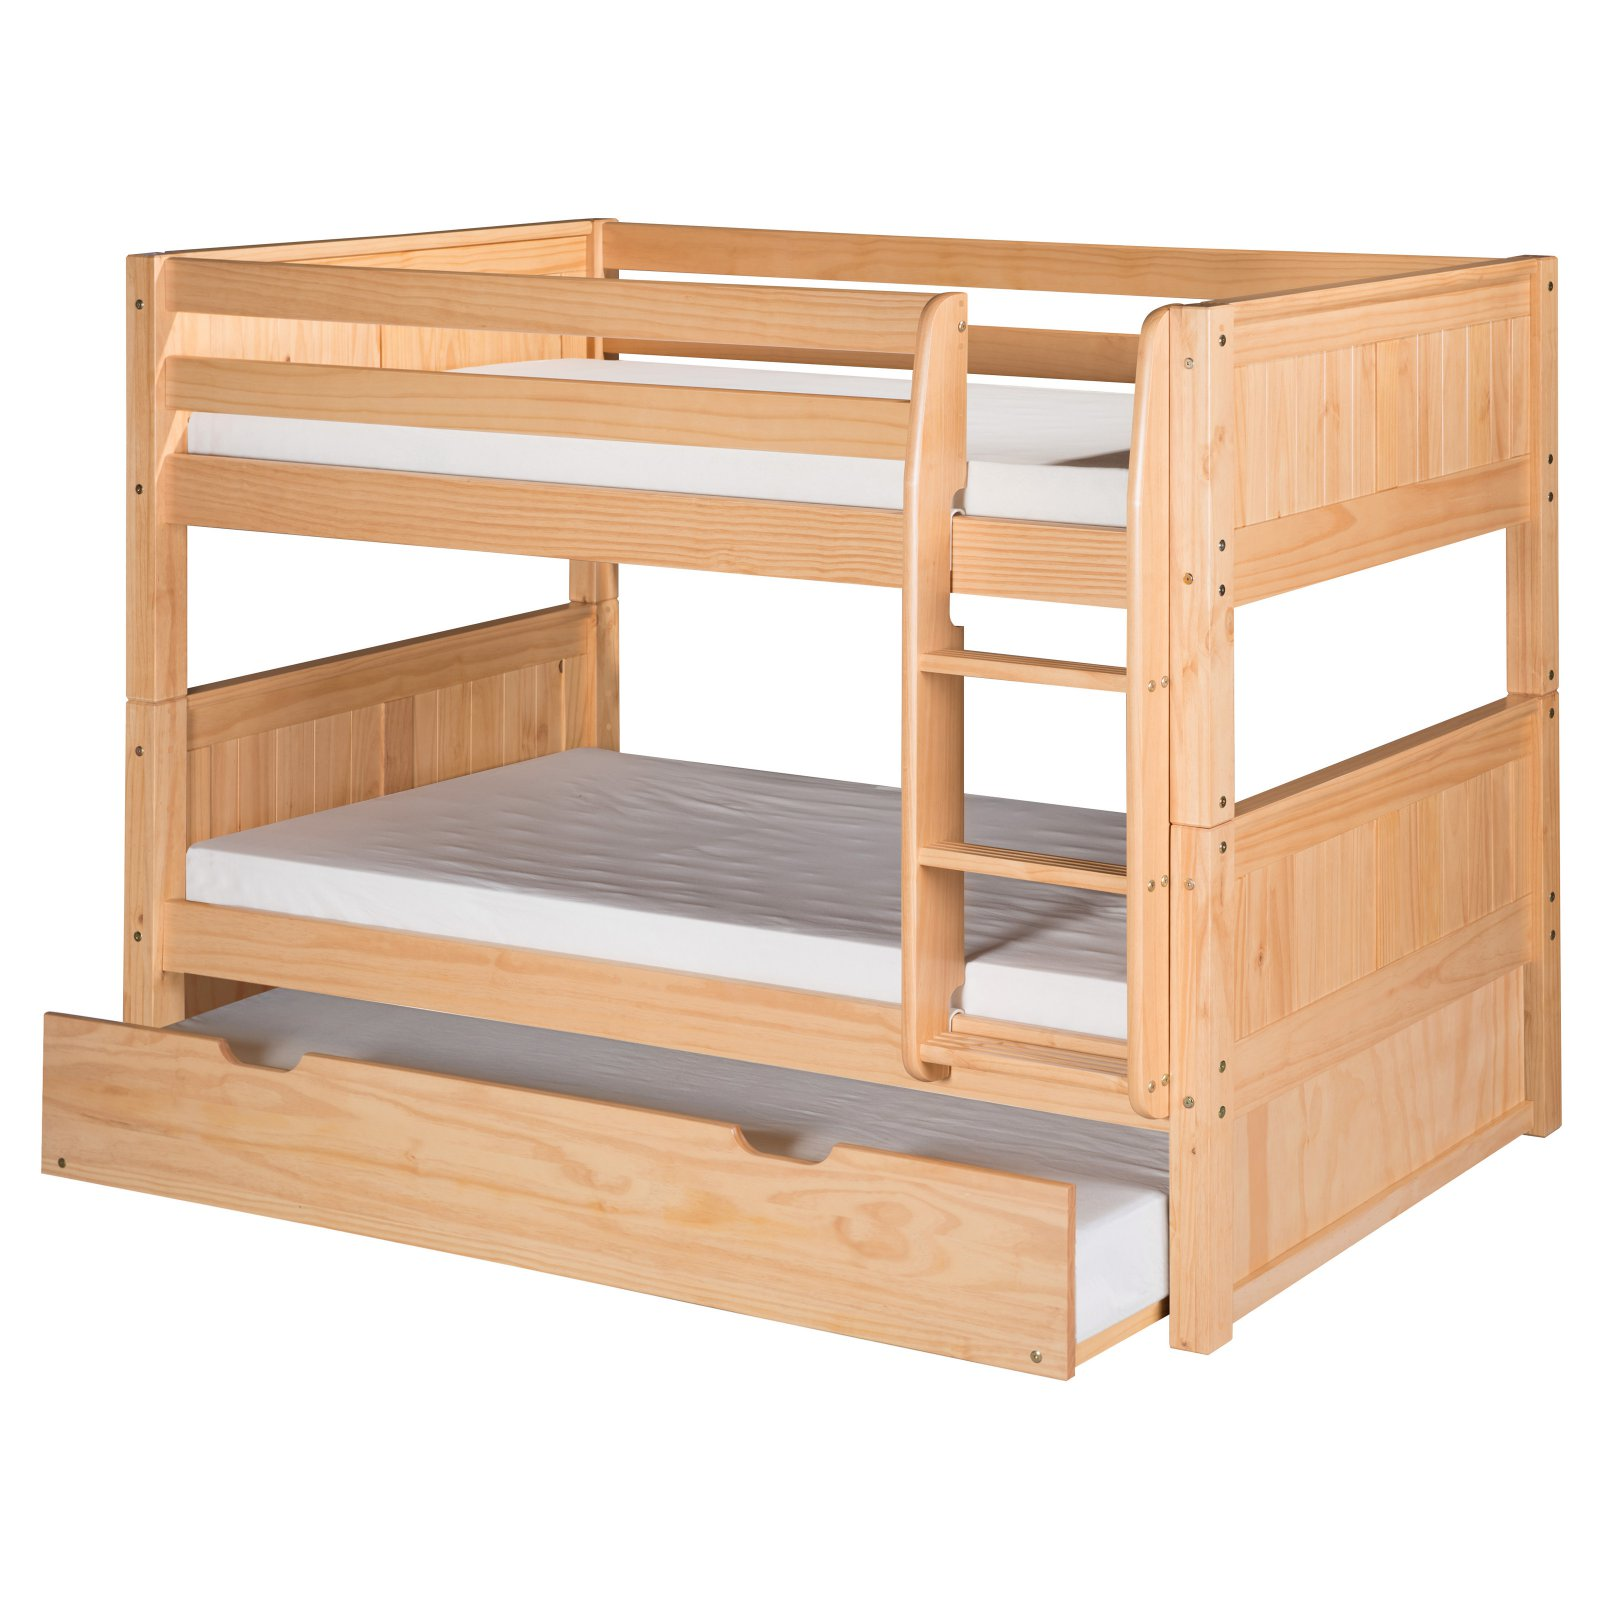 Camaflexi Twin over Twin Low Bunk Bed with Drawers - Panel Headboard - Natural Finish